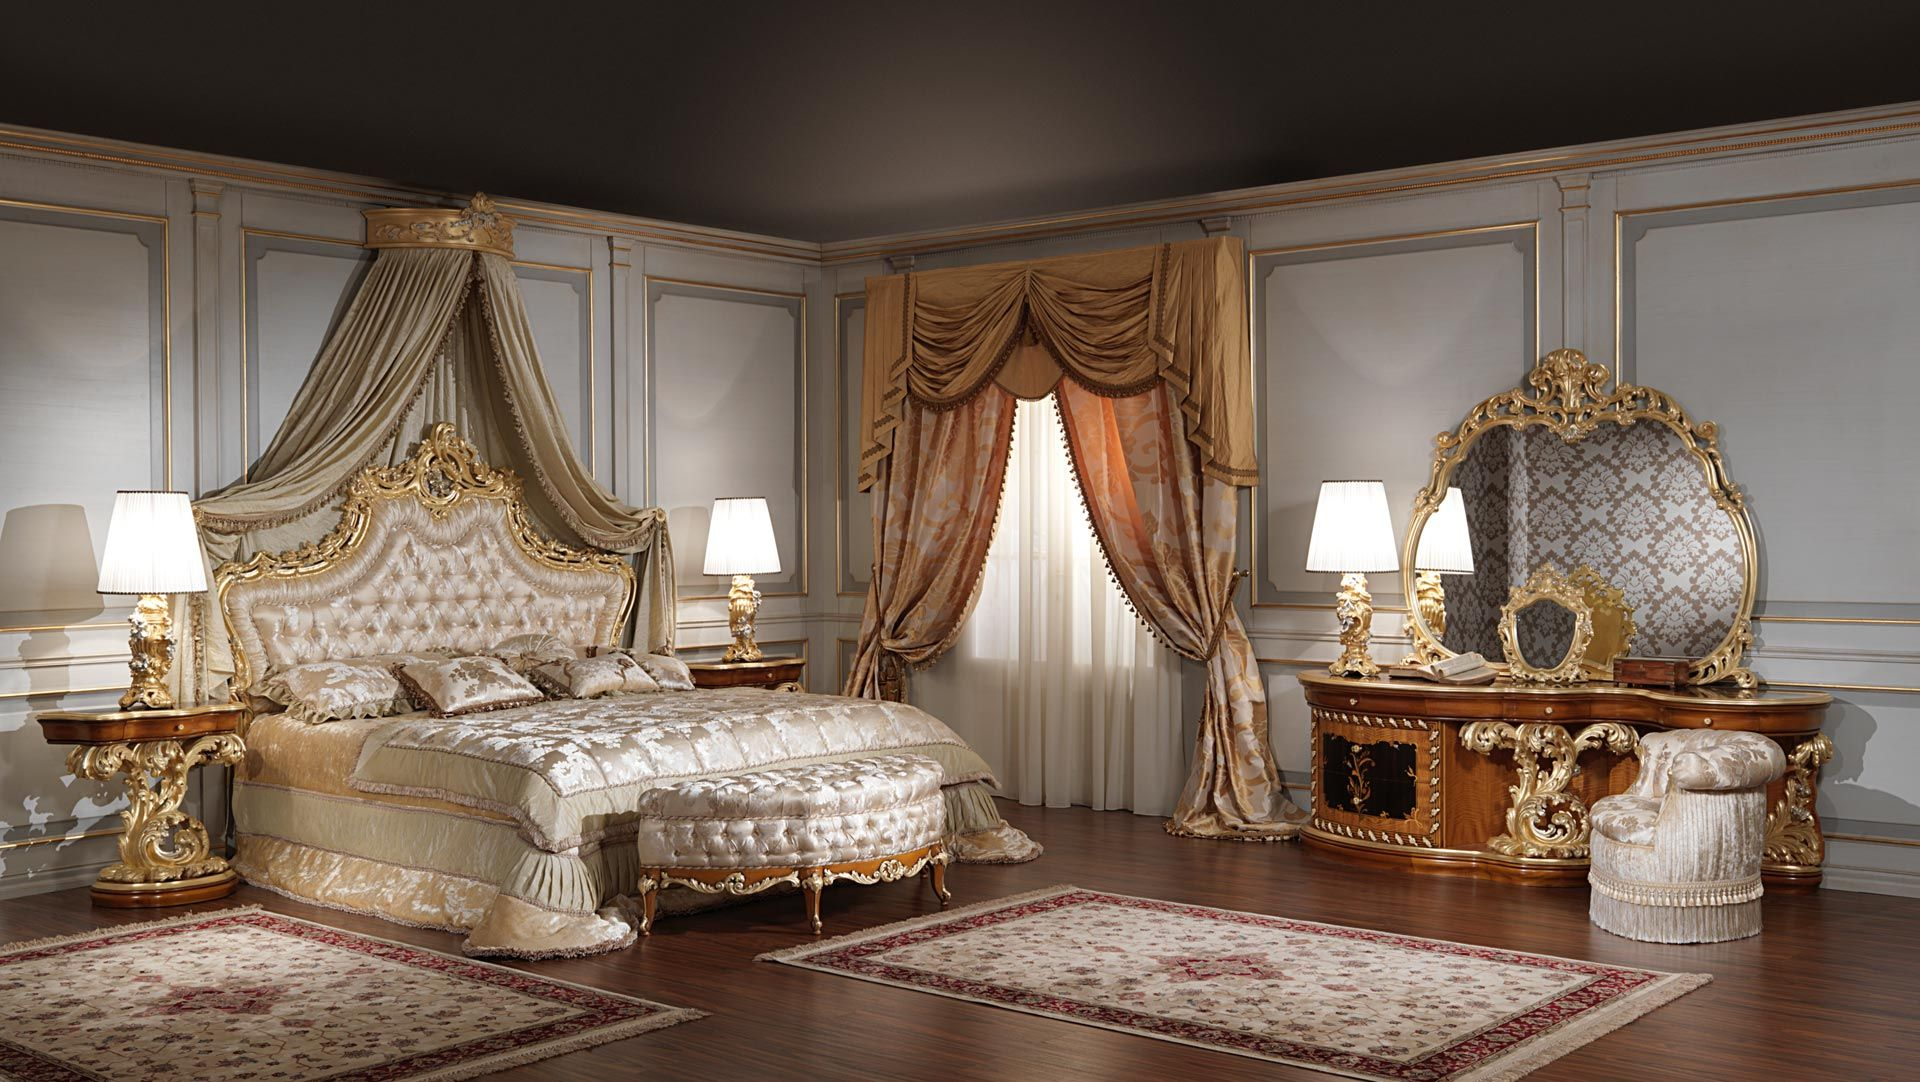 Classic Bedroom Roman Baroque Style Vimercati Furniture Set Solid Wood Bed Luxury Wall MirrorsMedieval BedroomNight